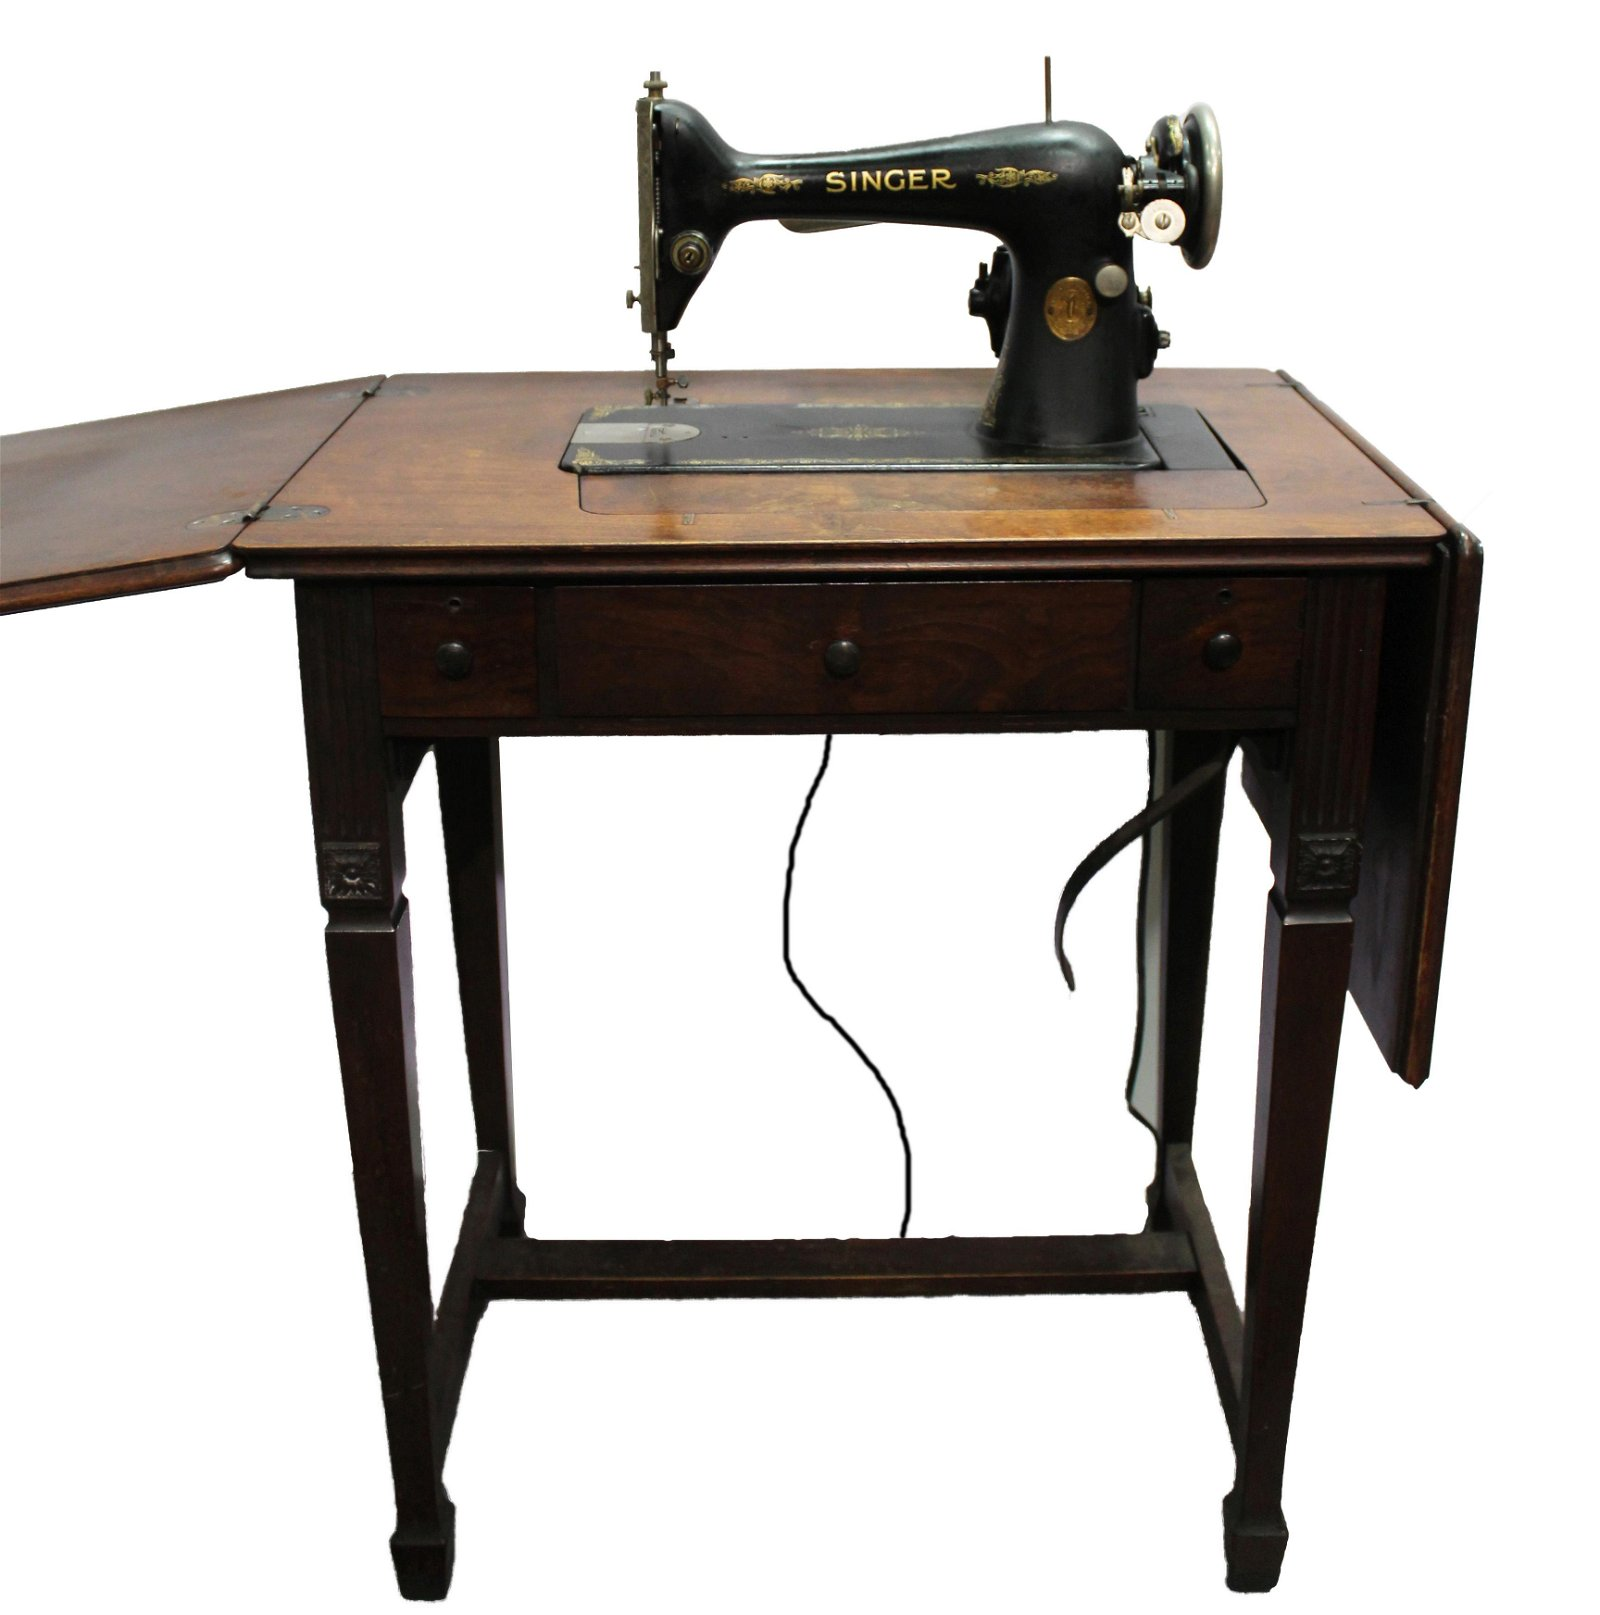 Vintage Singer Sewing Machine with Table